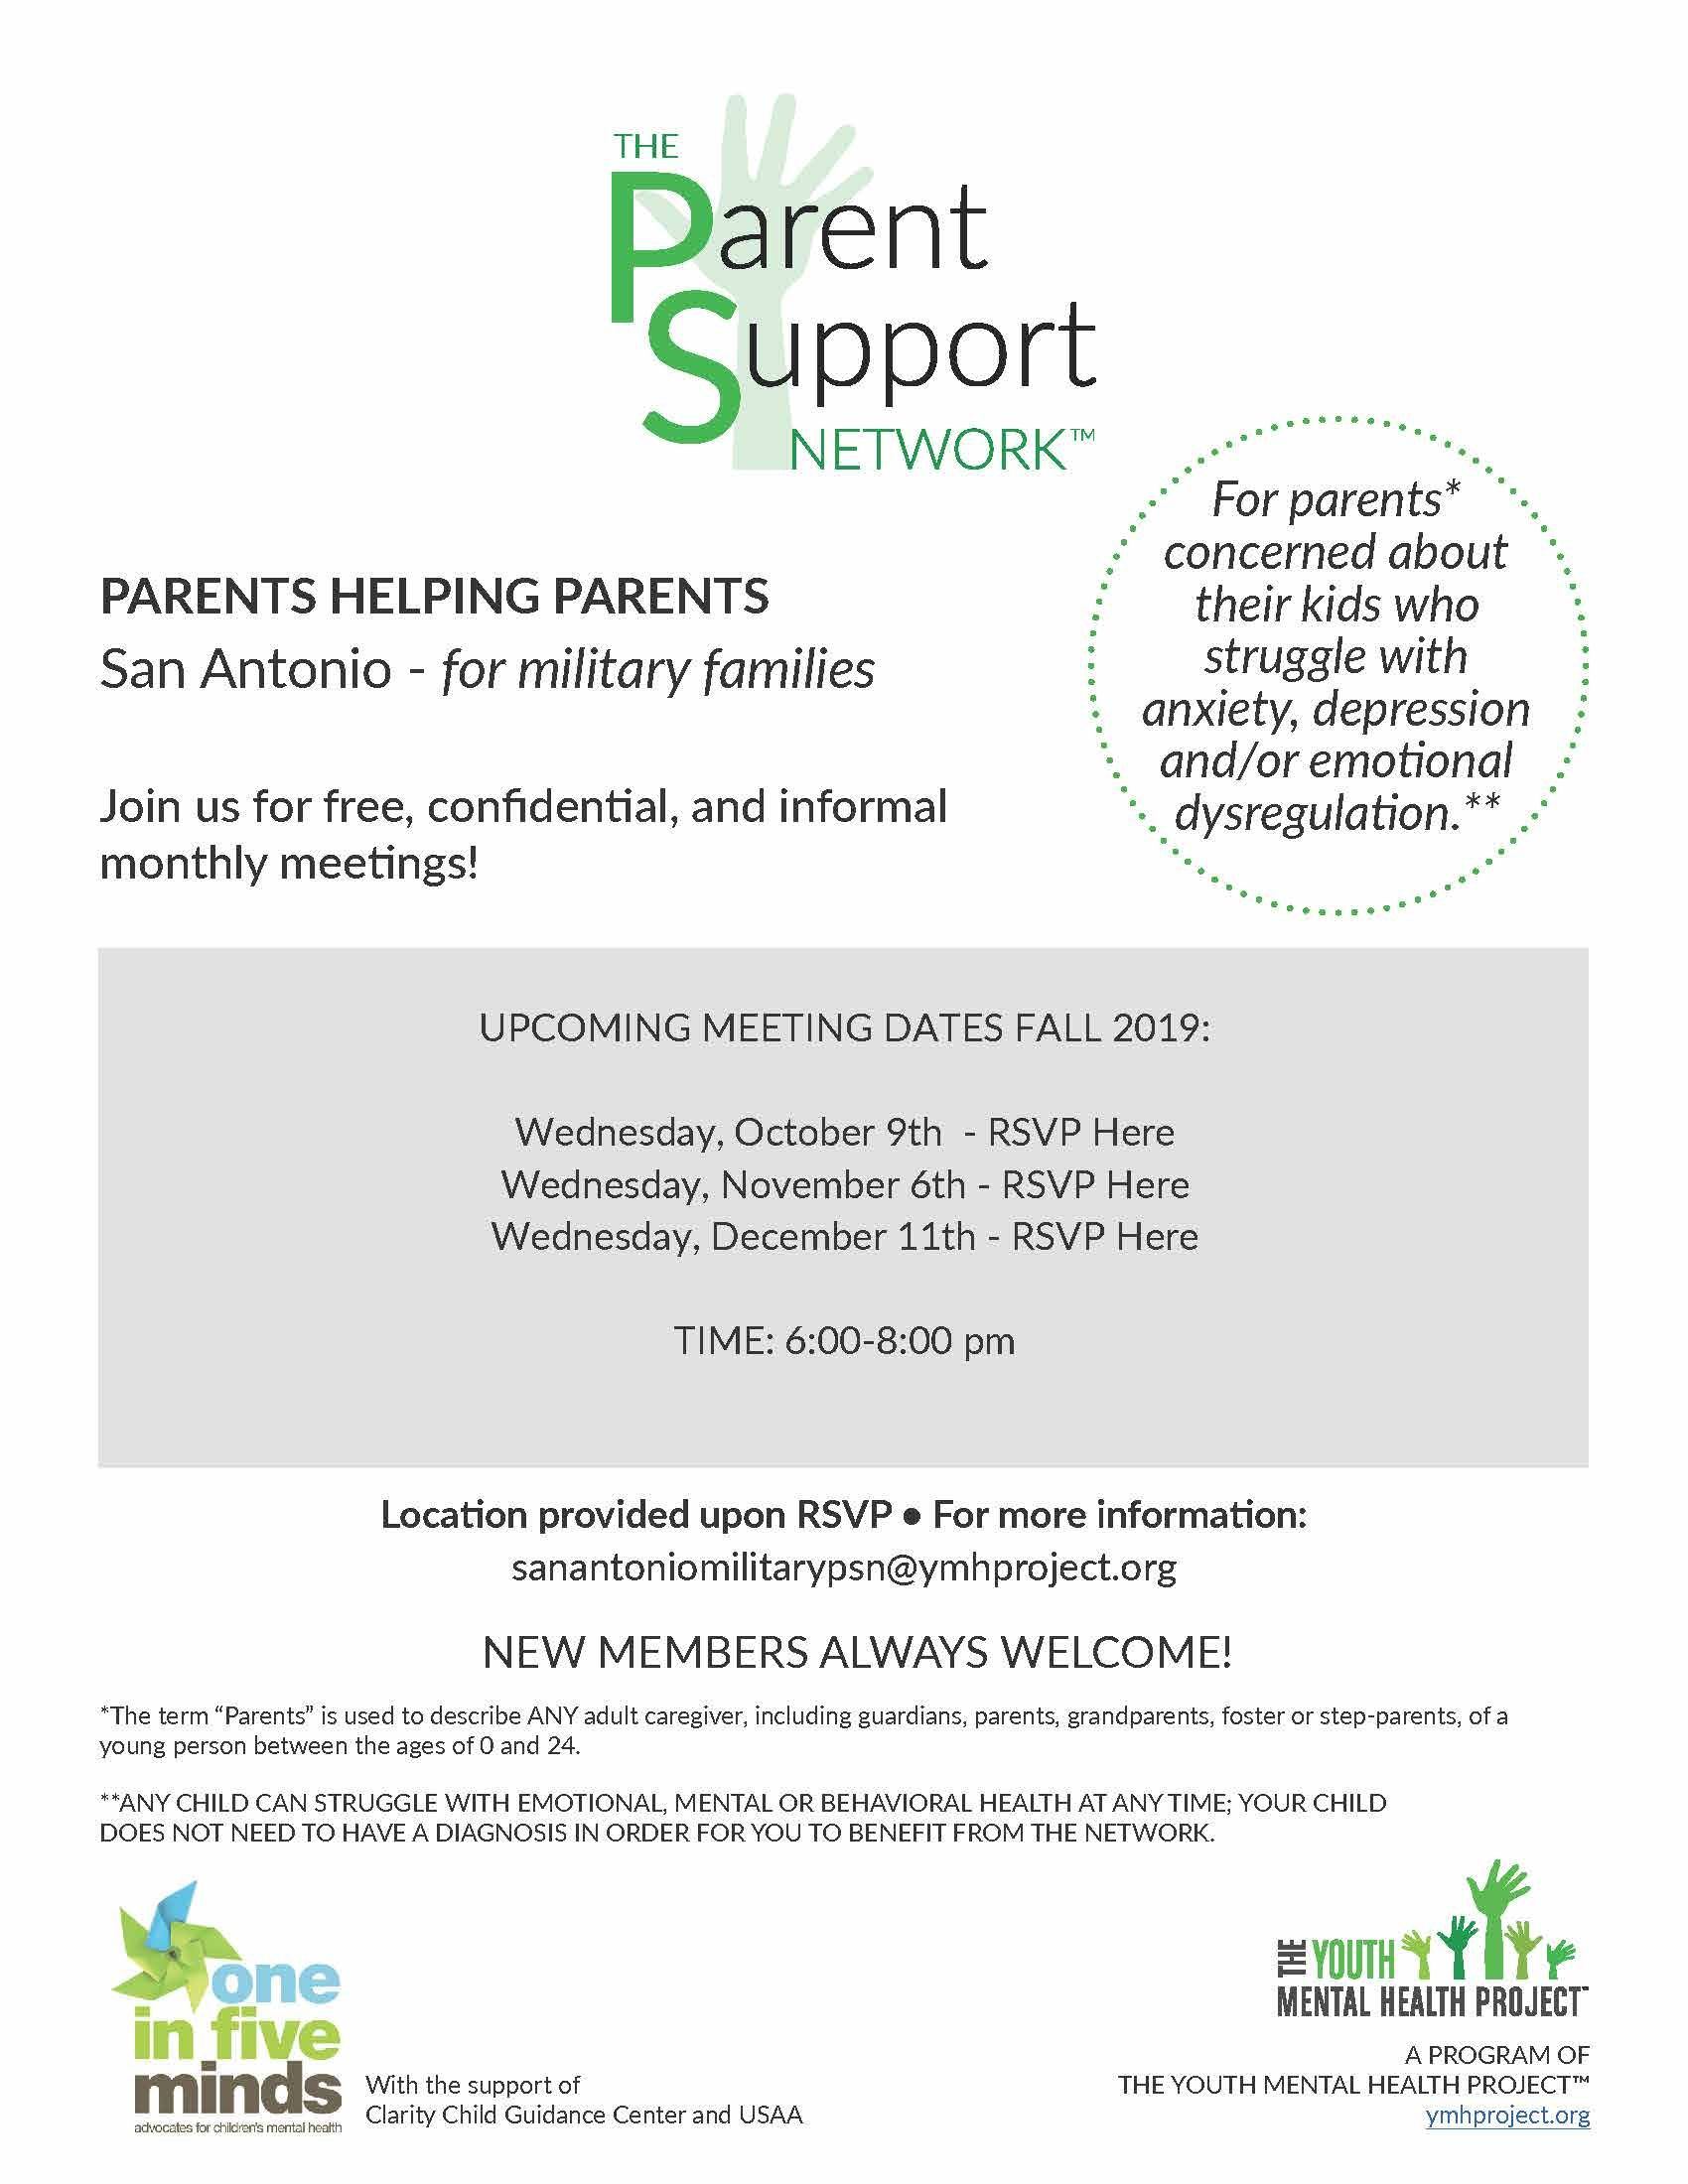 The Parent Support Network Is A Free Confidential Monthly Meeting For Caregivers Of Children Who Experience Emotional Mental Or Behavioral Issu Parent Support